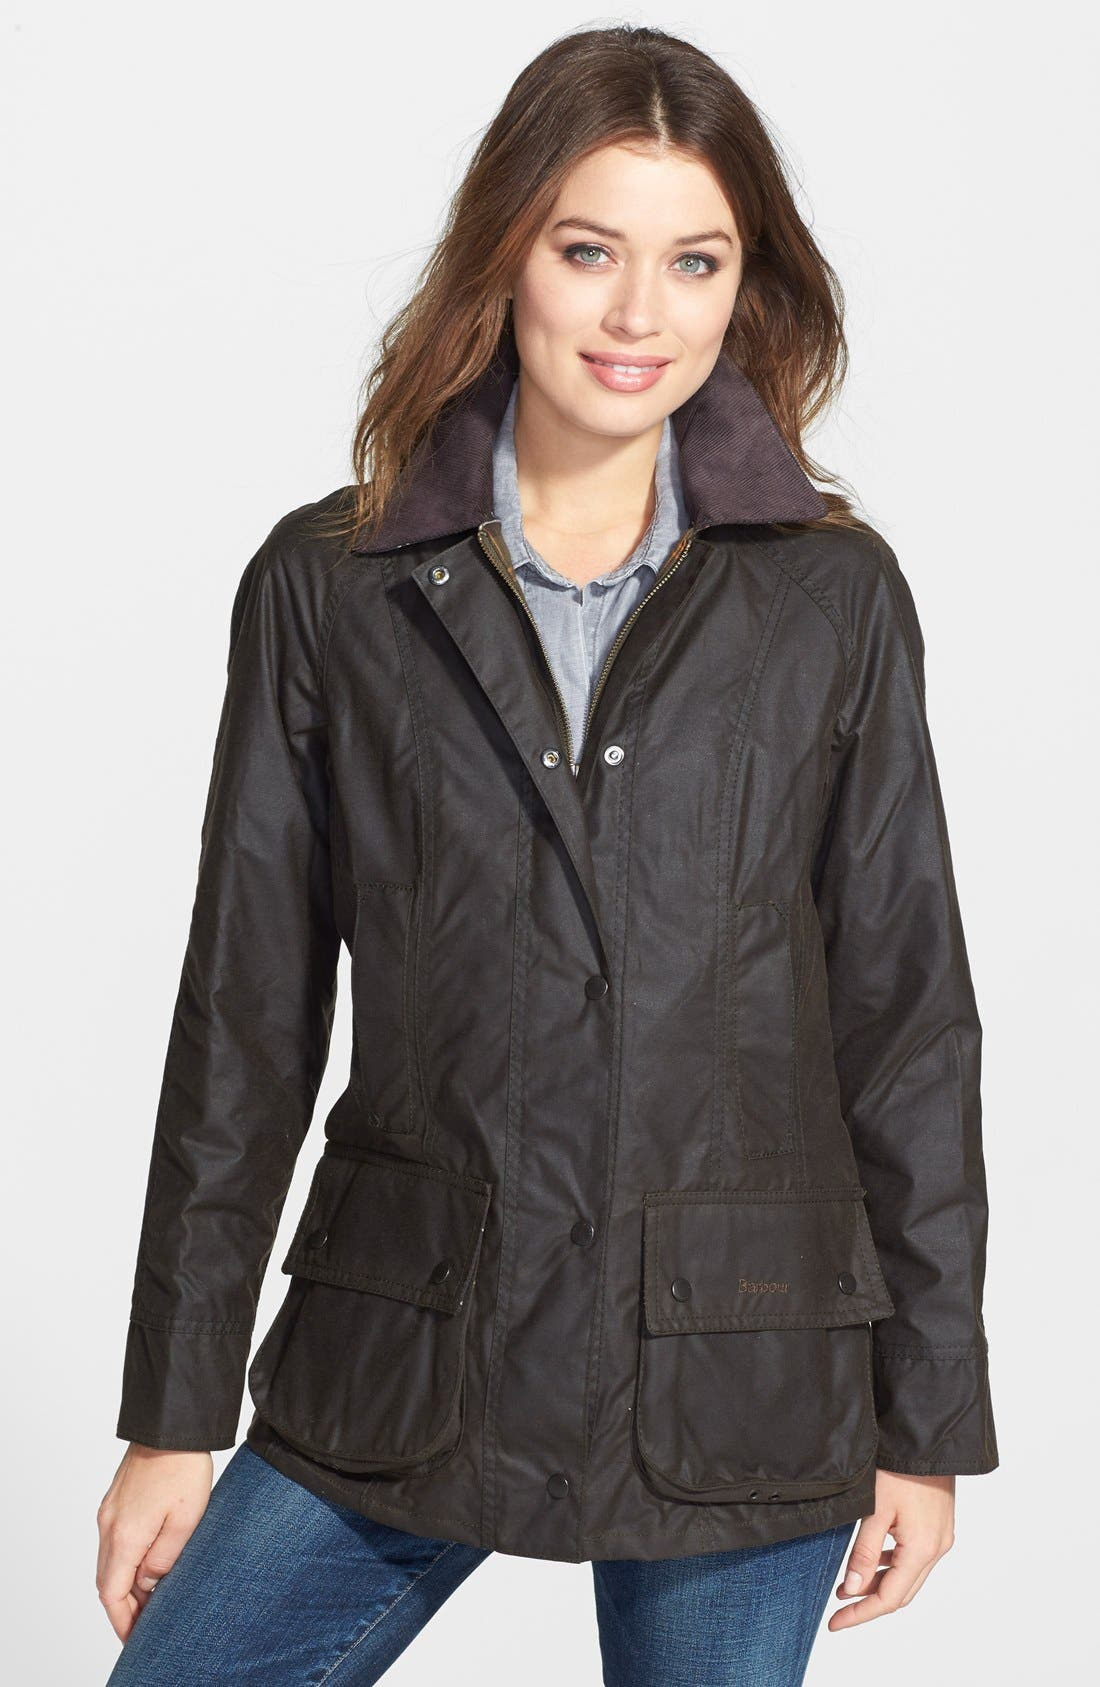 Alternate Image 1 Selected - Barbour Beadnell Waxed Cotton Jacket